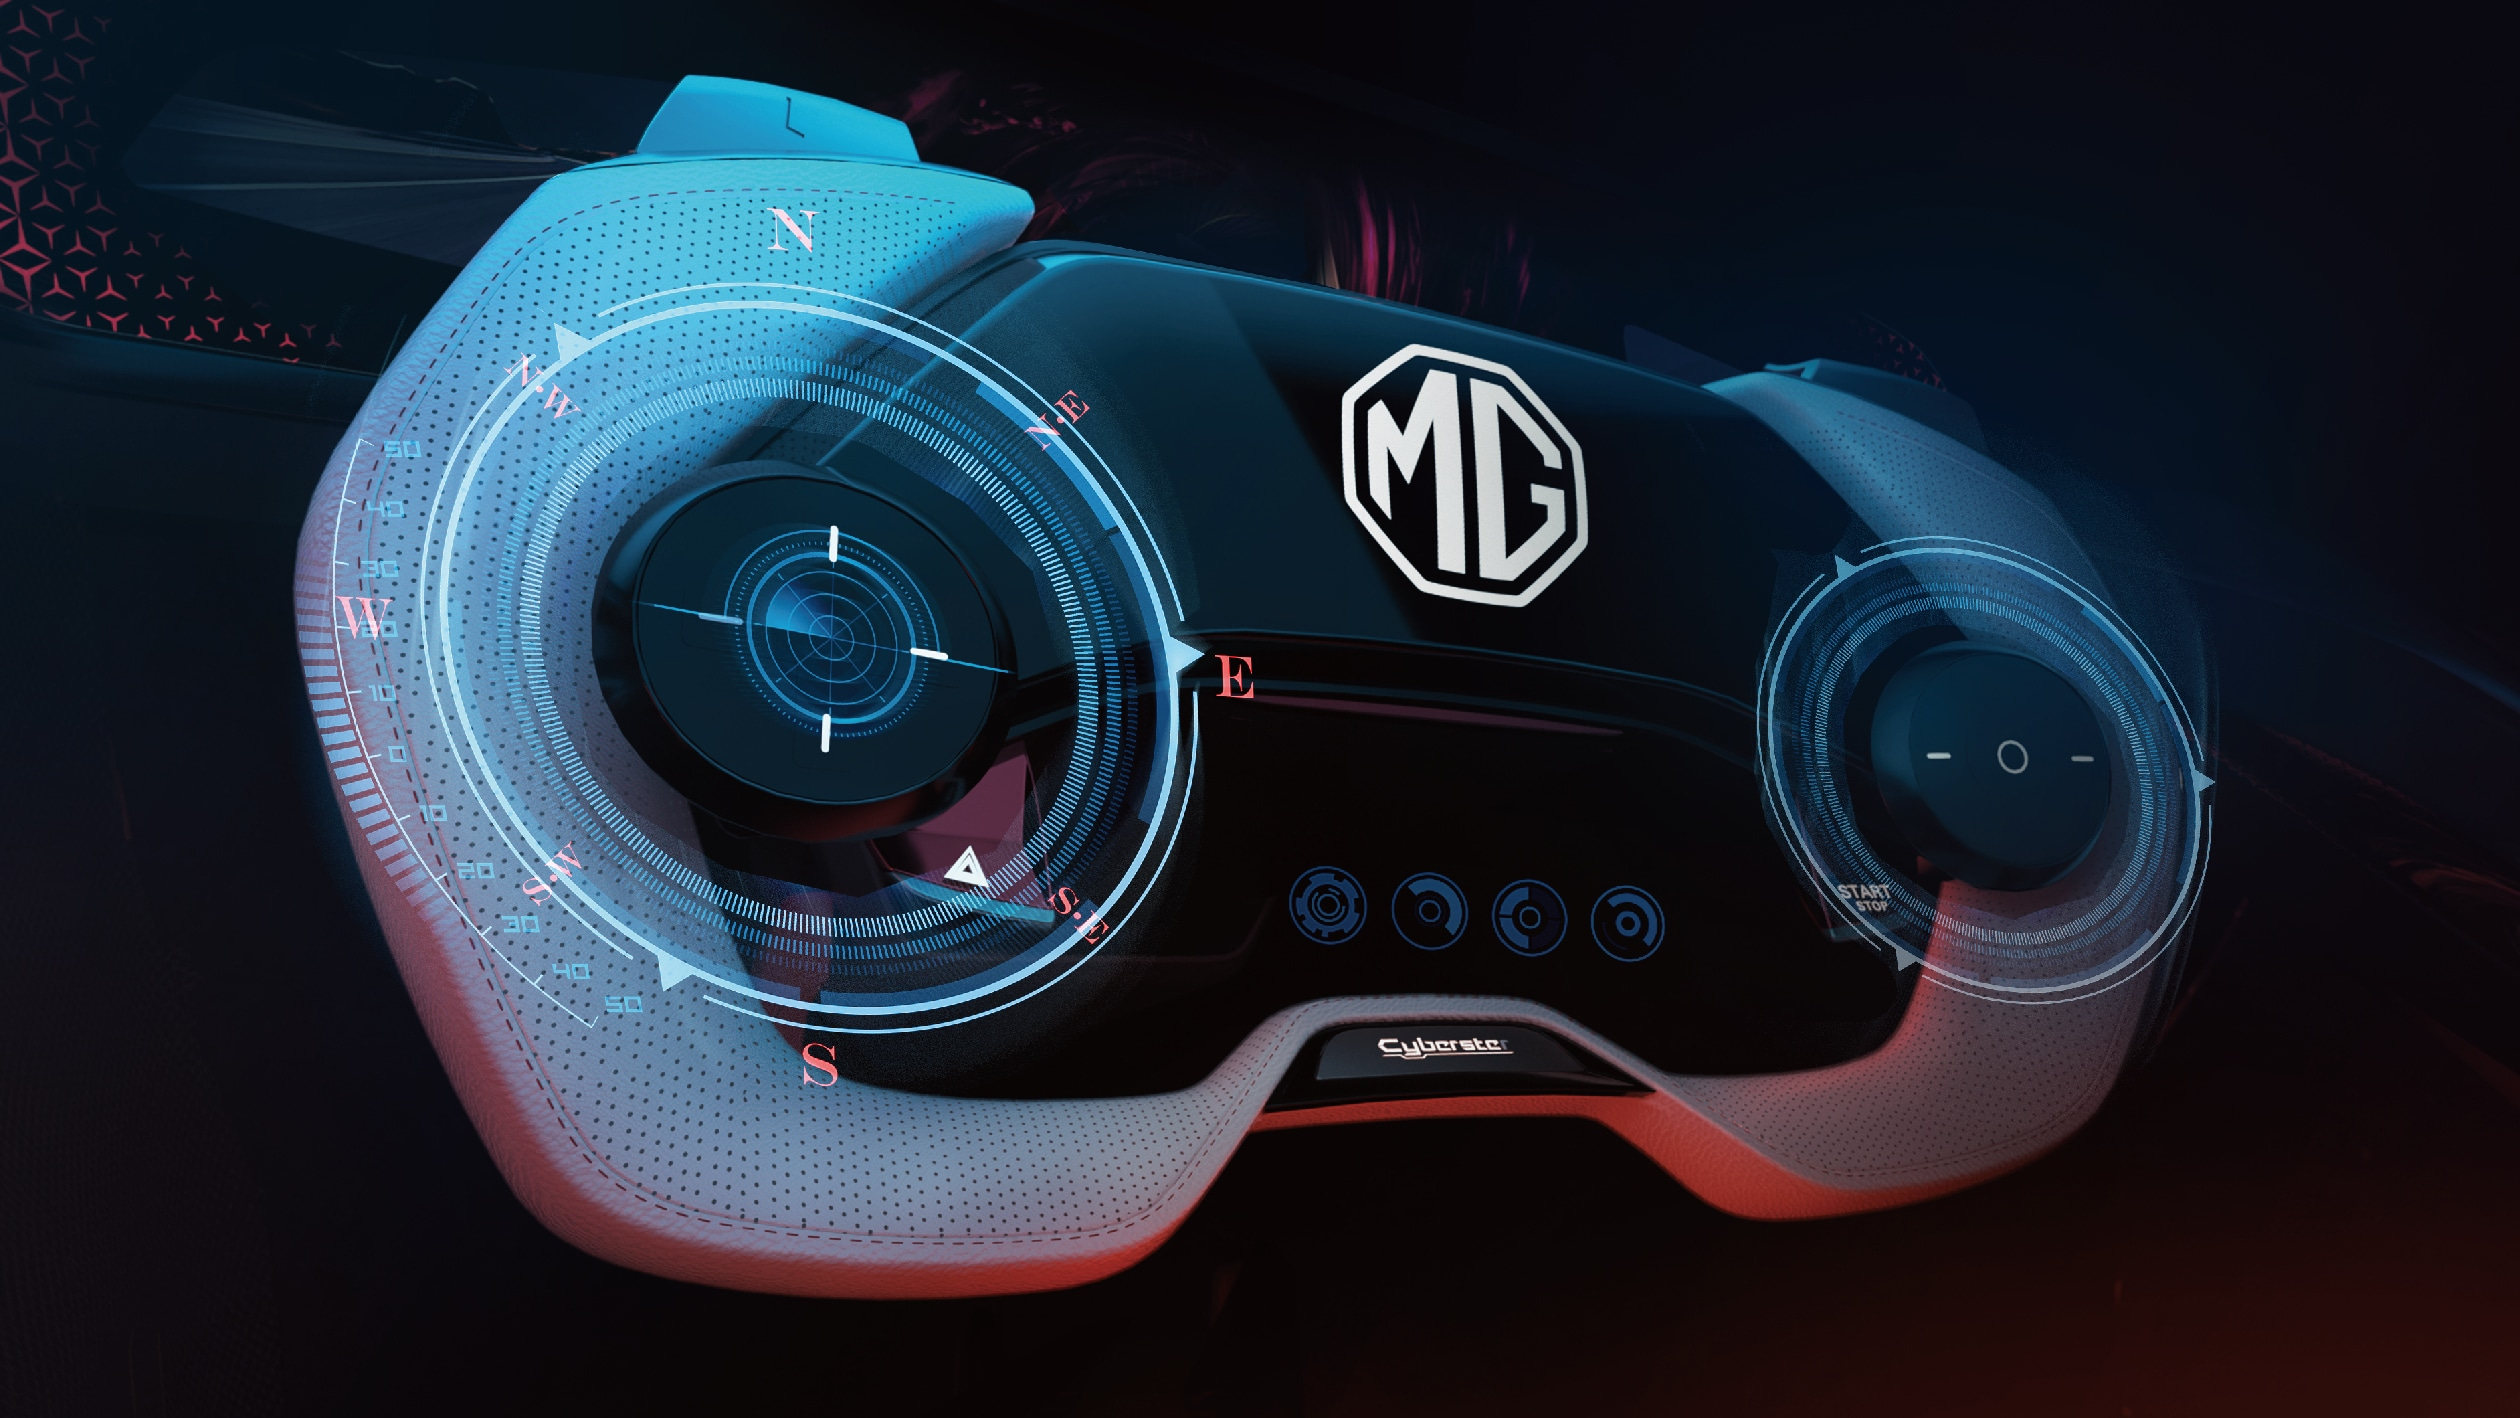 MG Cyberster gets an avant-garde shaped gamepad steering wheel with black and white contrast texture, four-dimensional button on the thumb, index finger button on top.